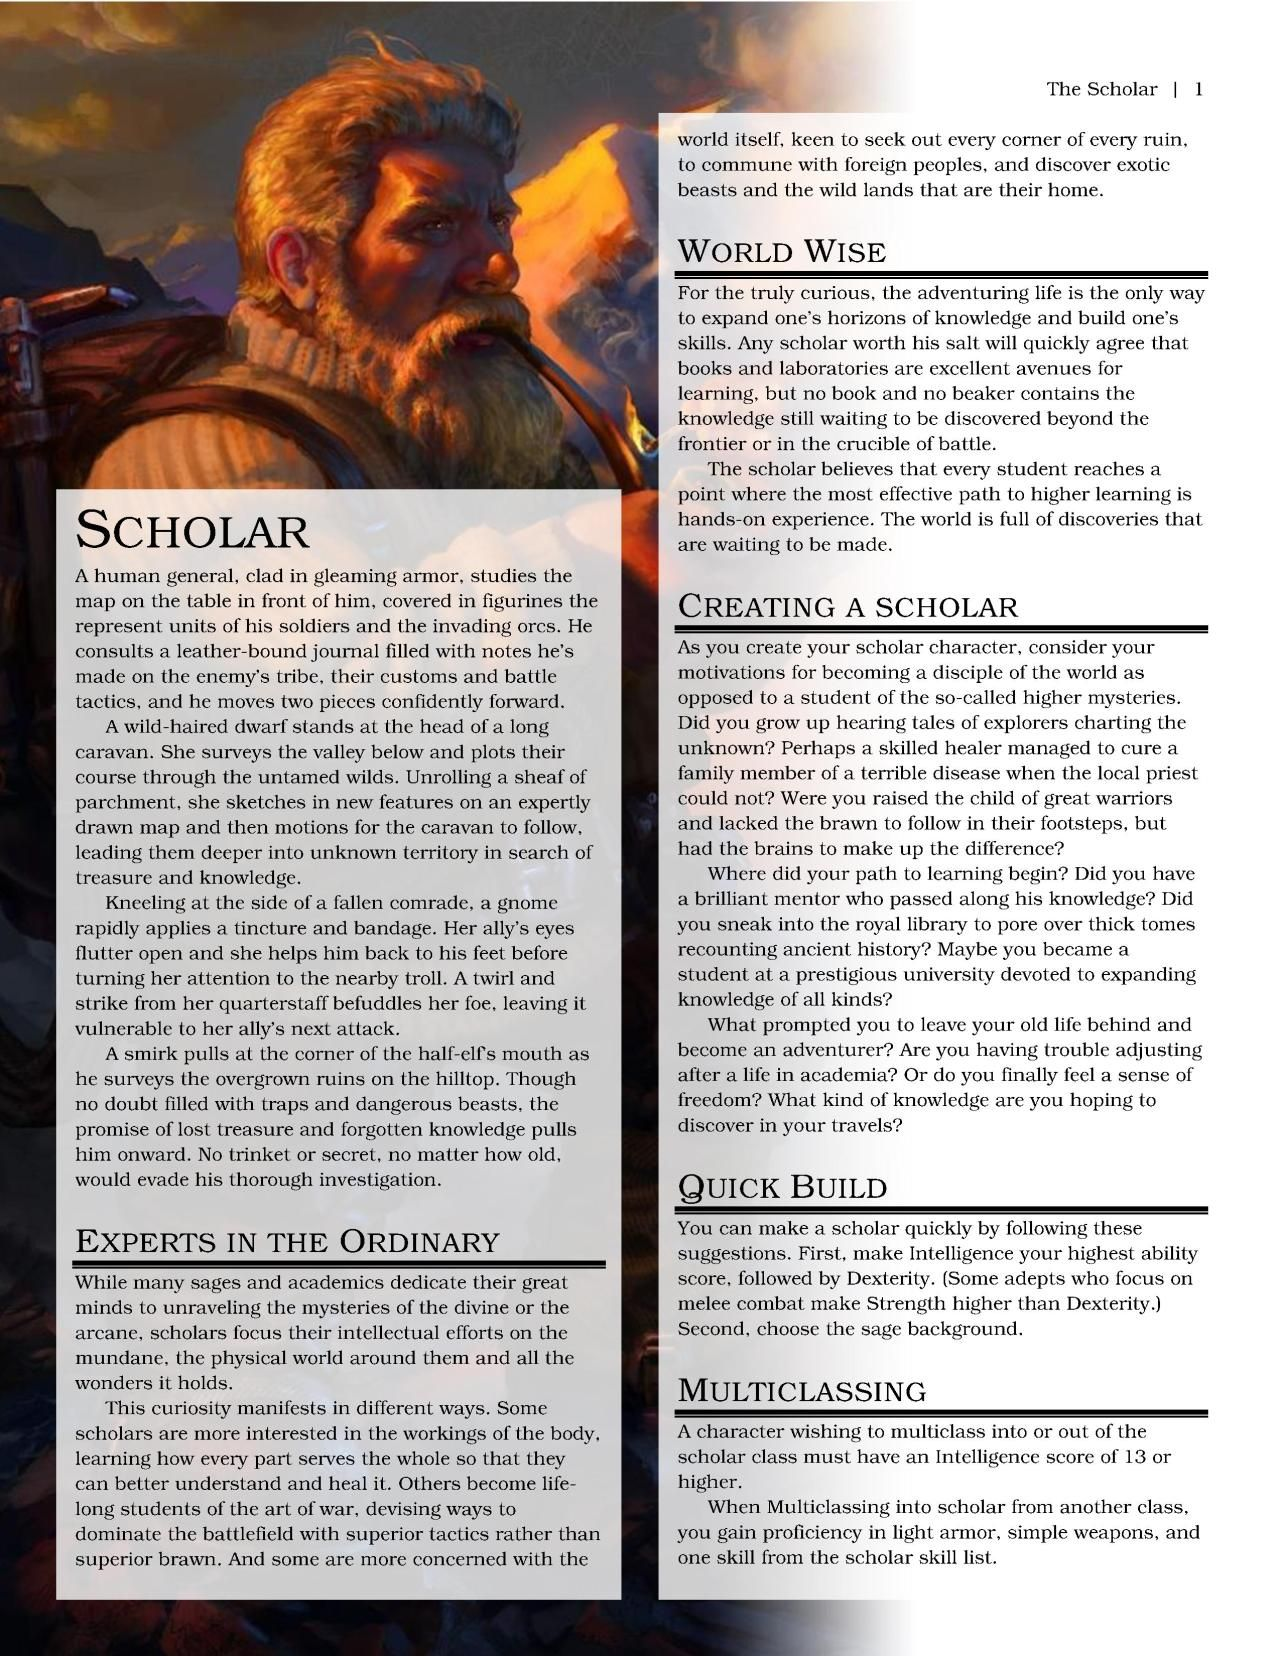 DnD 5e Homebrew — Scholar Class by wdalright | Characters in